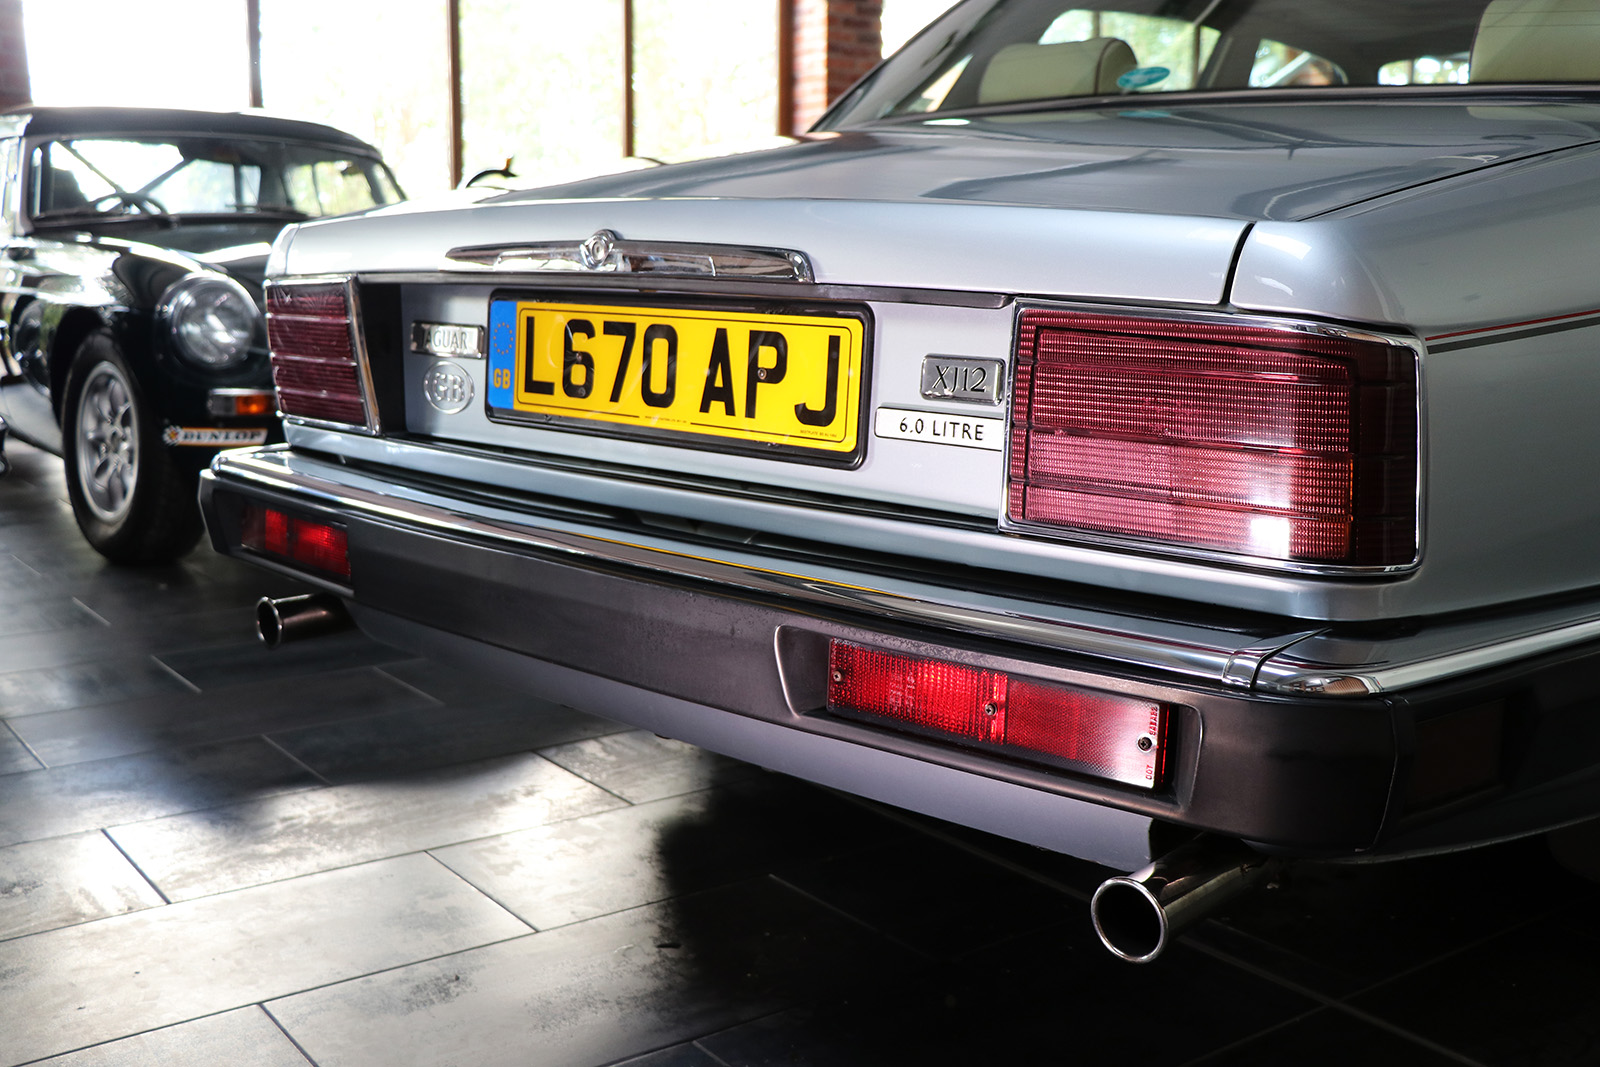 1994_Jaguar XJ40_V12_6 litre_silver_Daimler_Sayer Selection 6 web.jpg